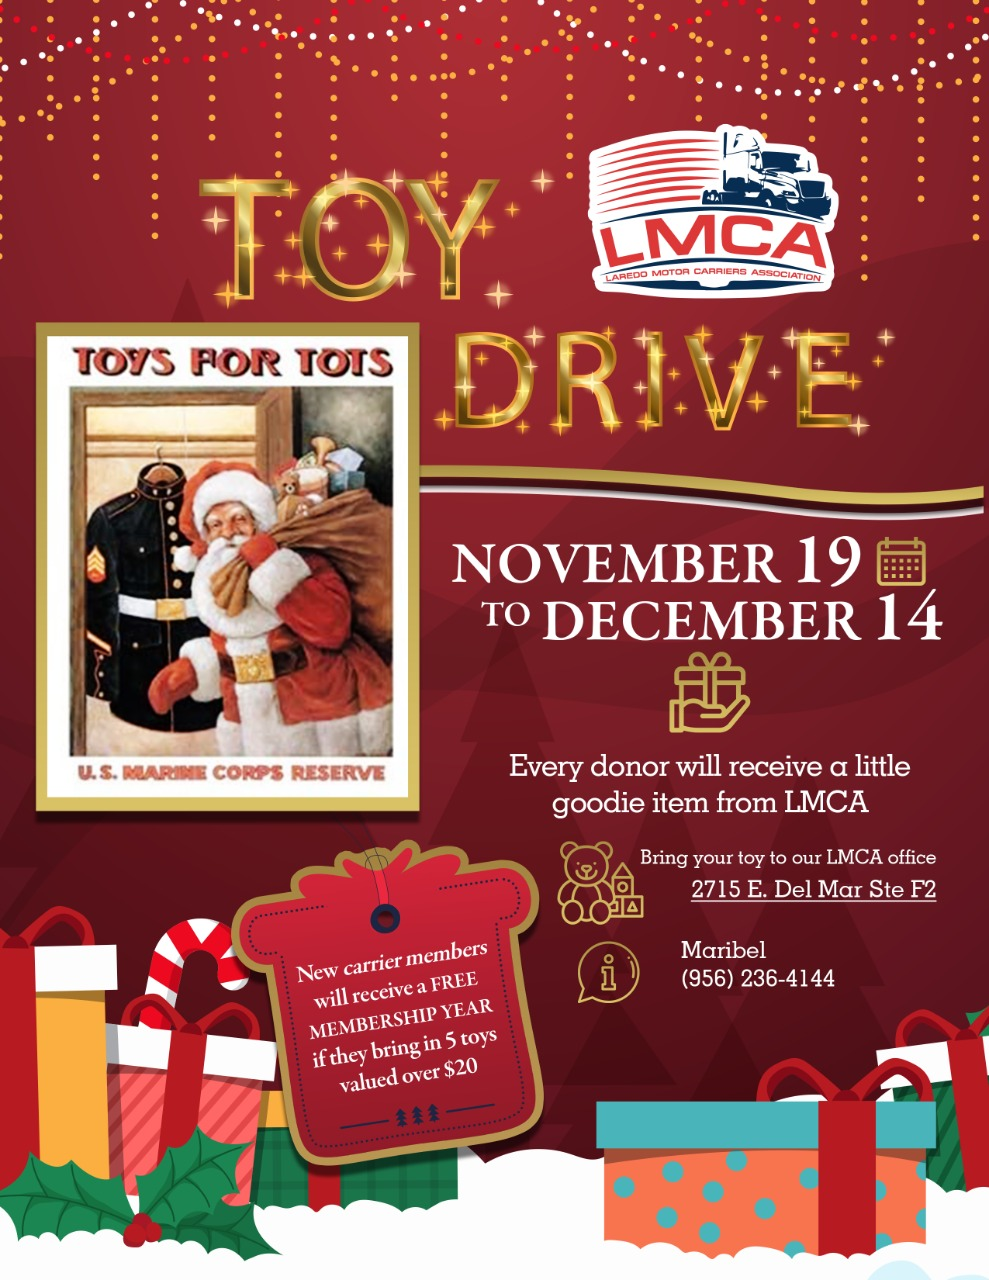 LMCA's 1st Annual Toys for Tots Toy Drive!